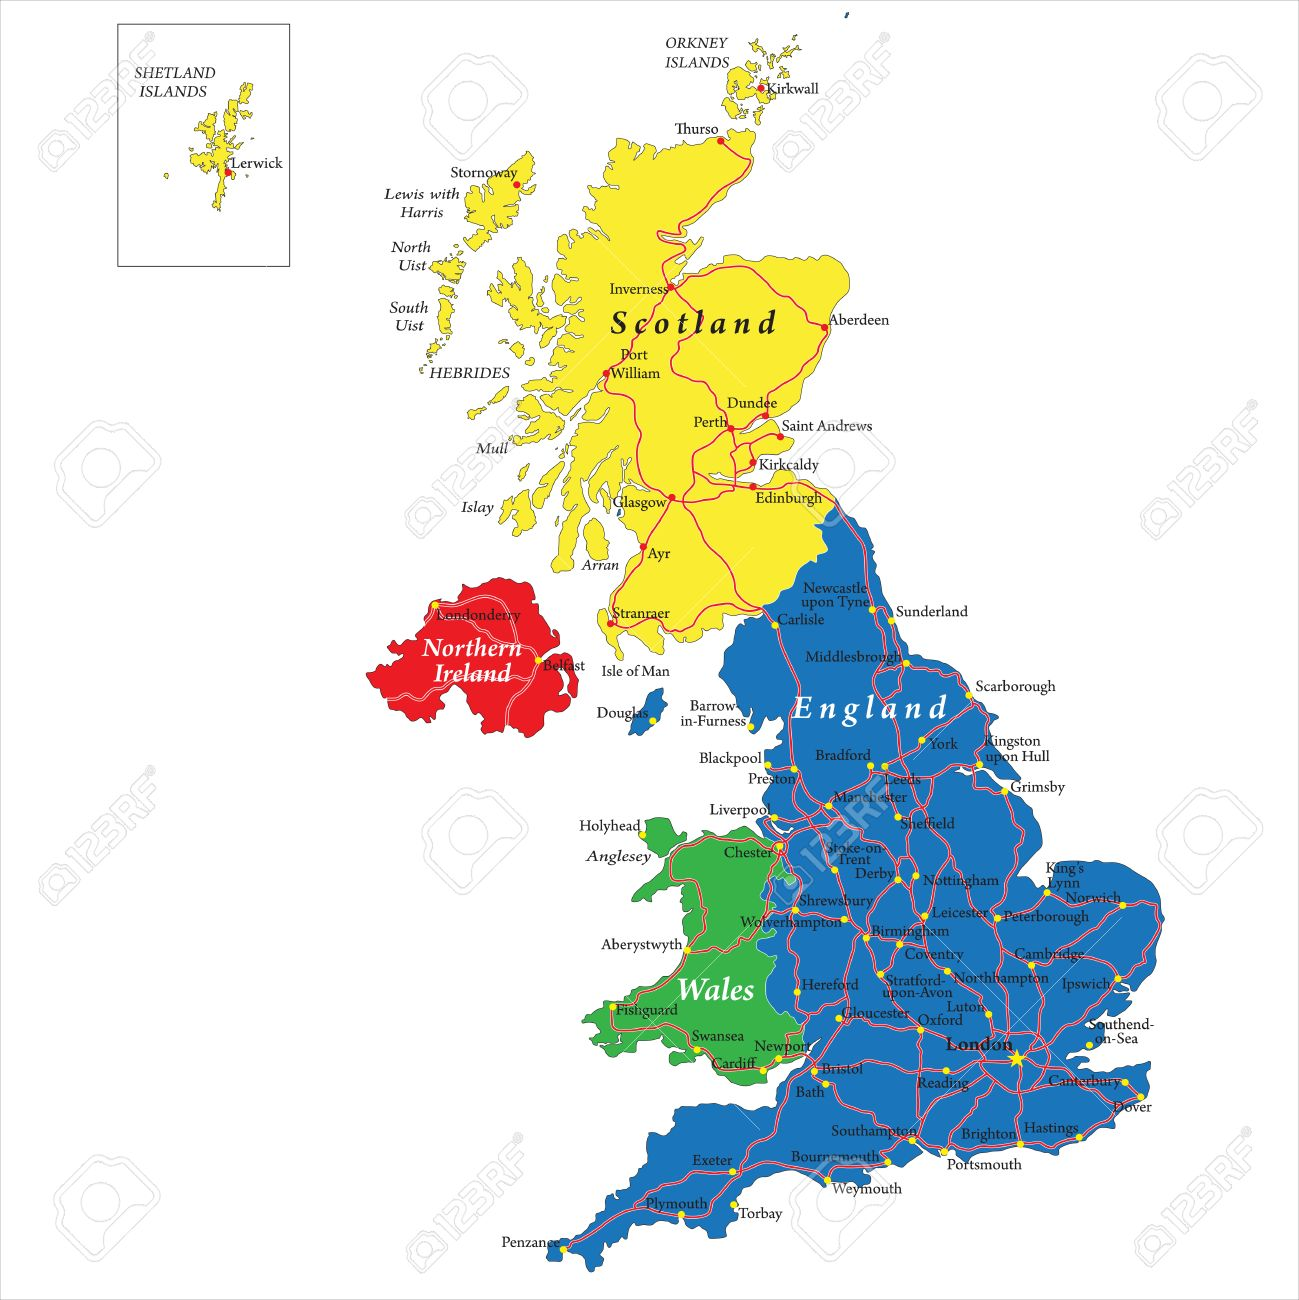 England,Scotland,Wales Map Royalty Free Cliparts, Vectors, And